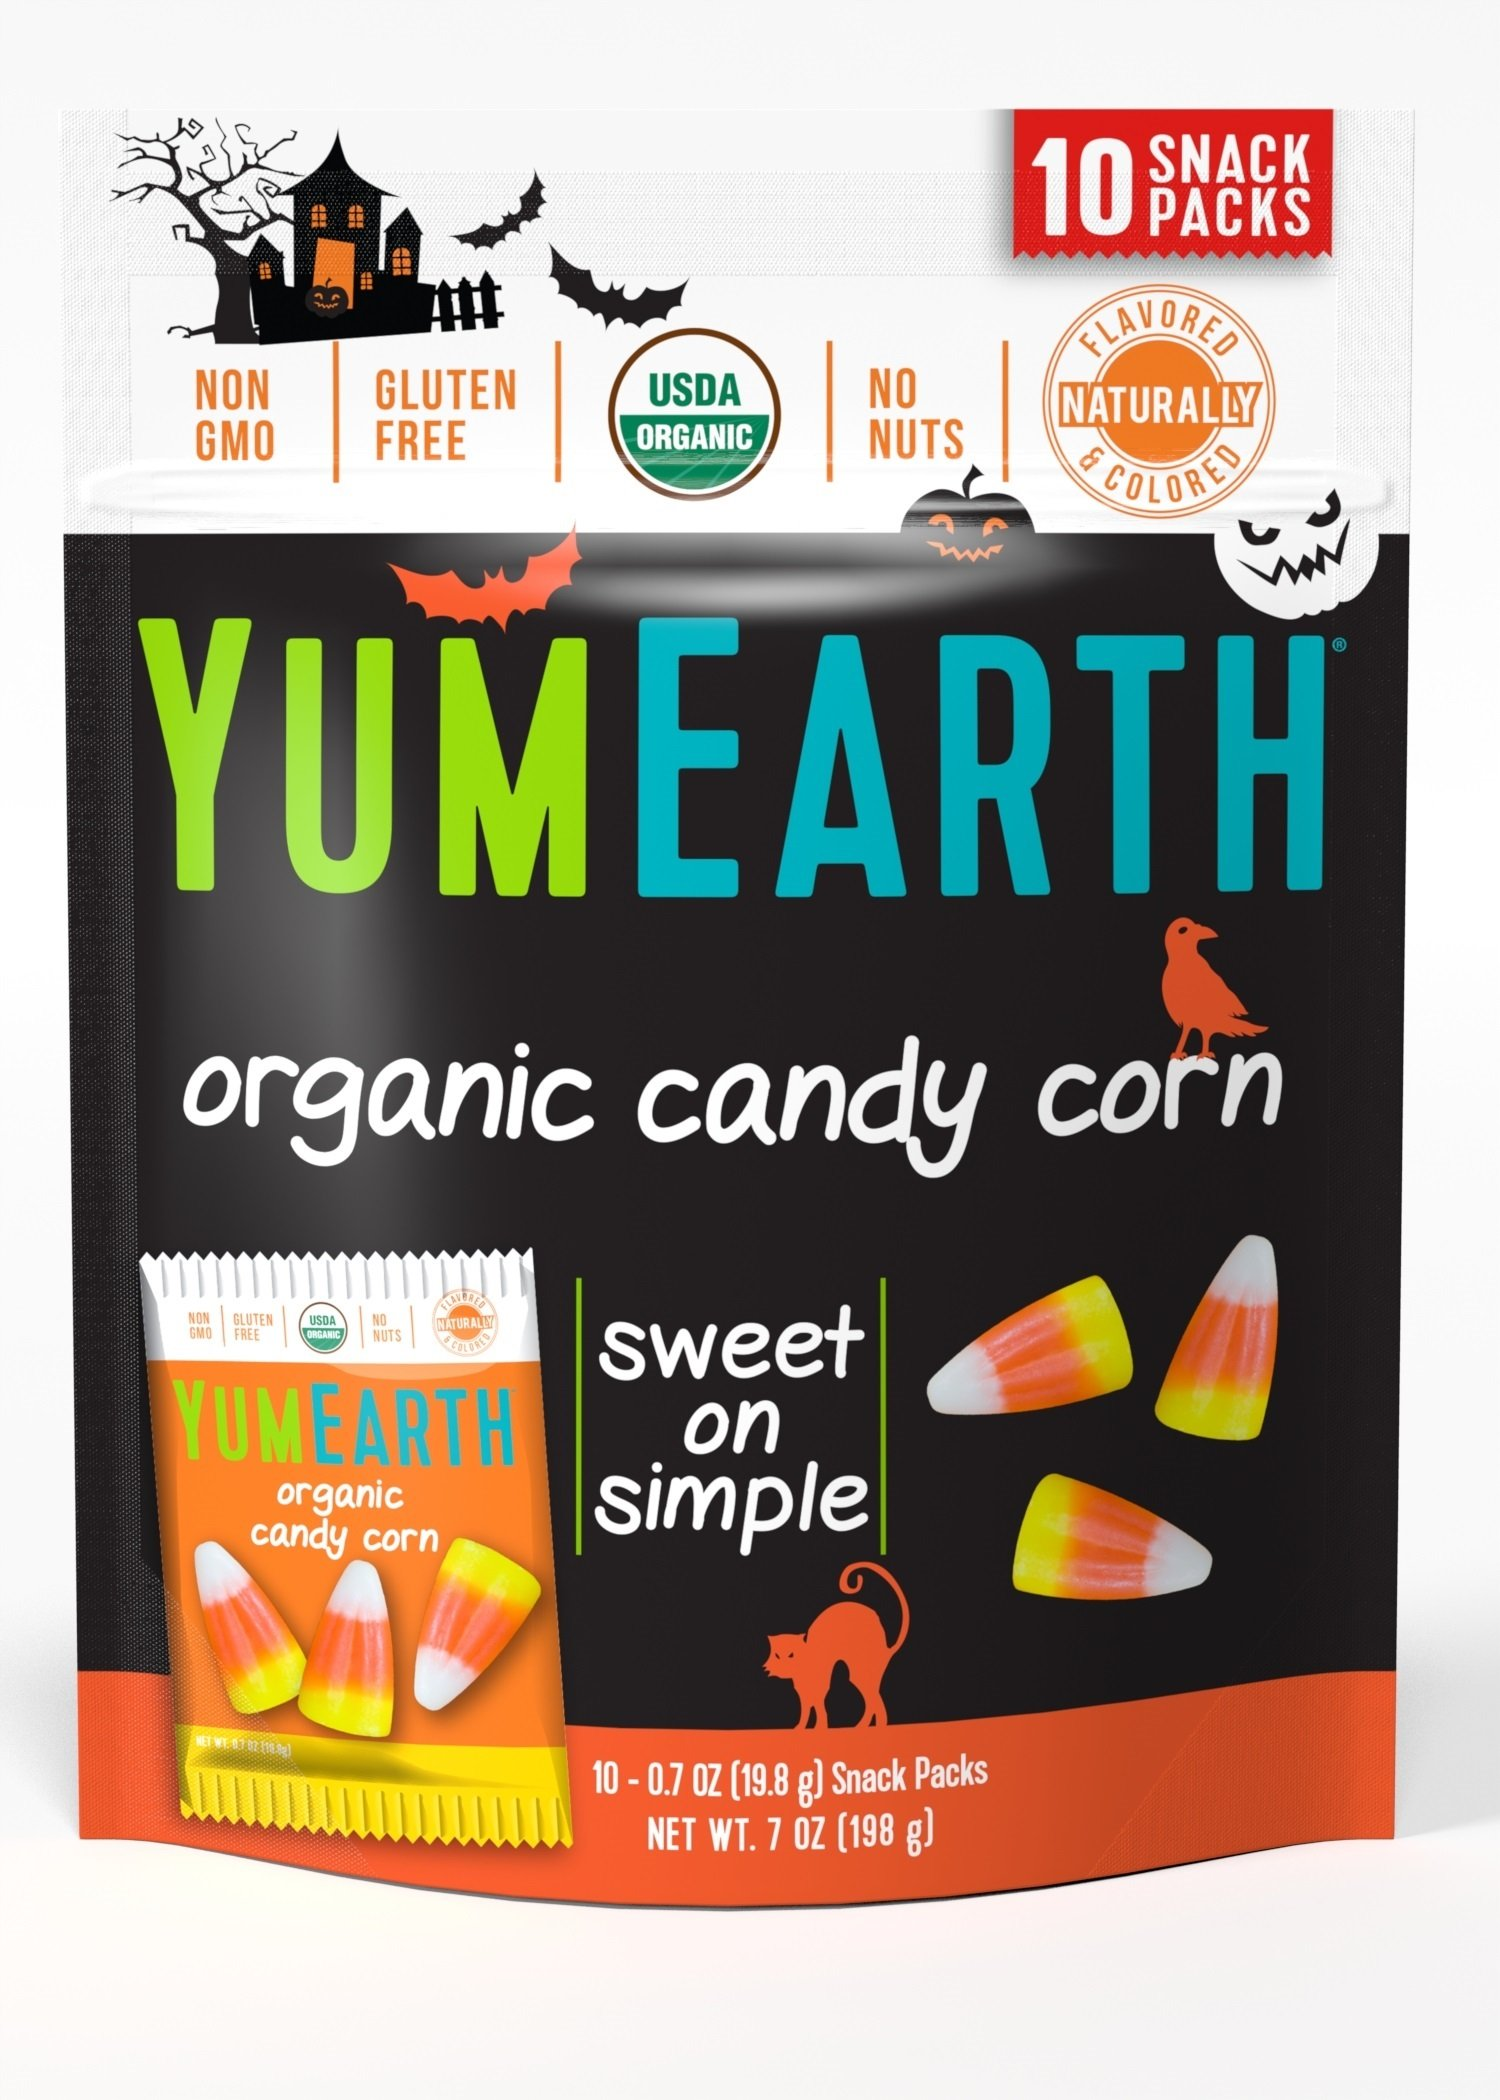 YumEarth Organic Gluten Free Candy Corn Snack Packs, 10 Count (Pack of 18)